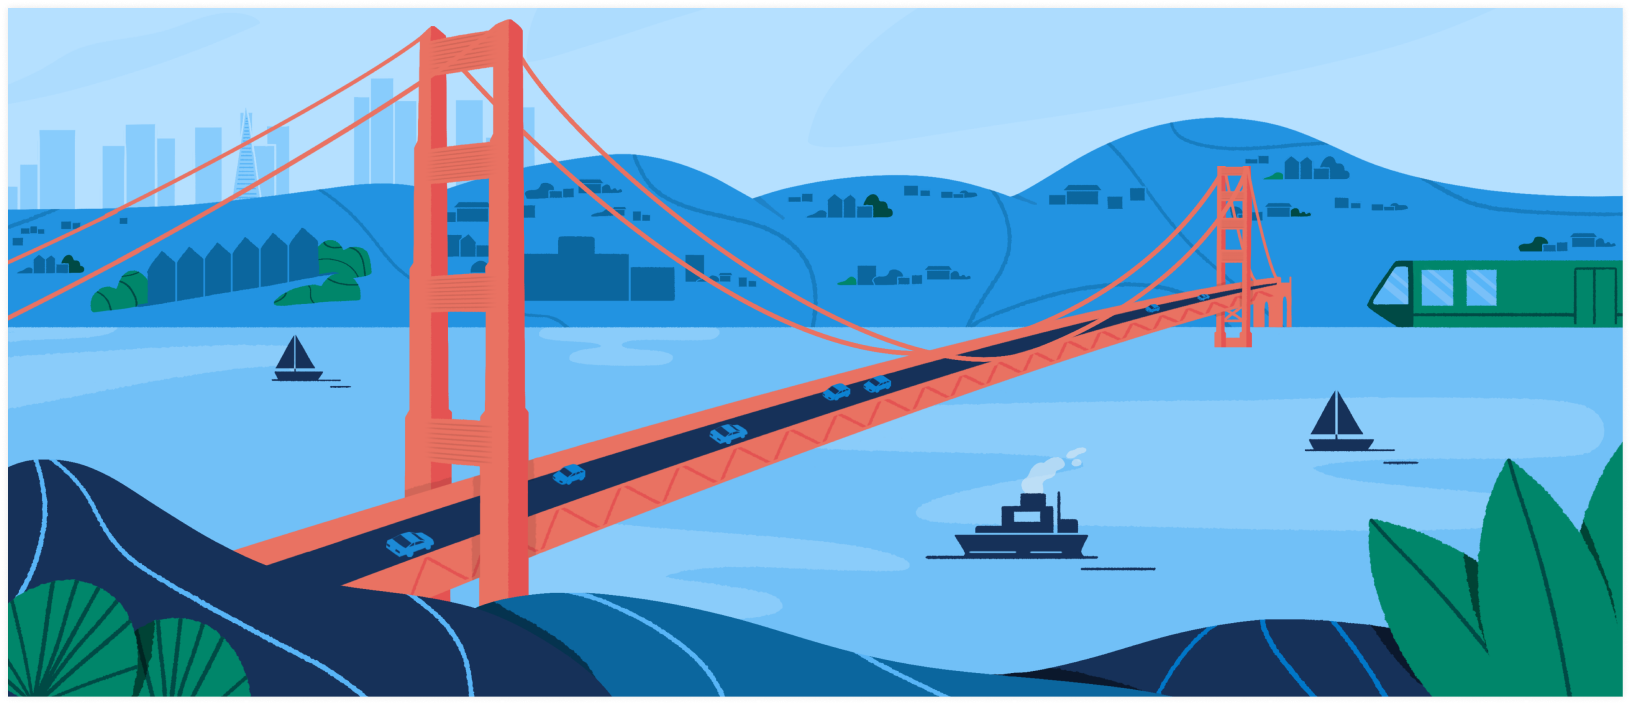 CA DMV Illustration Golden Gate Bridge